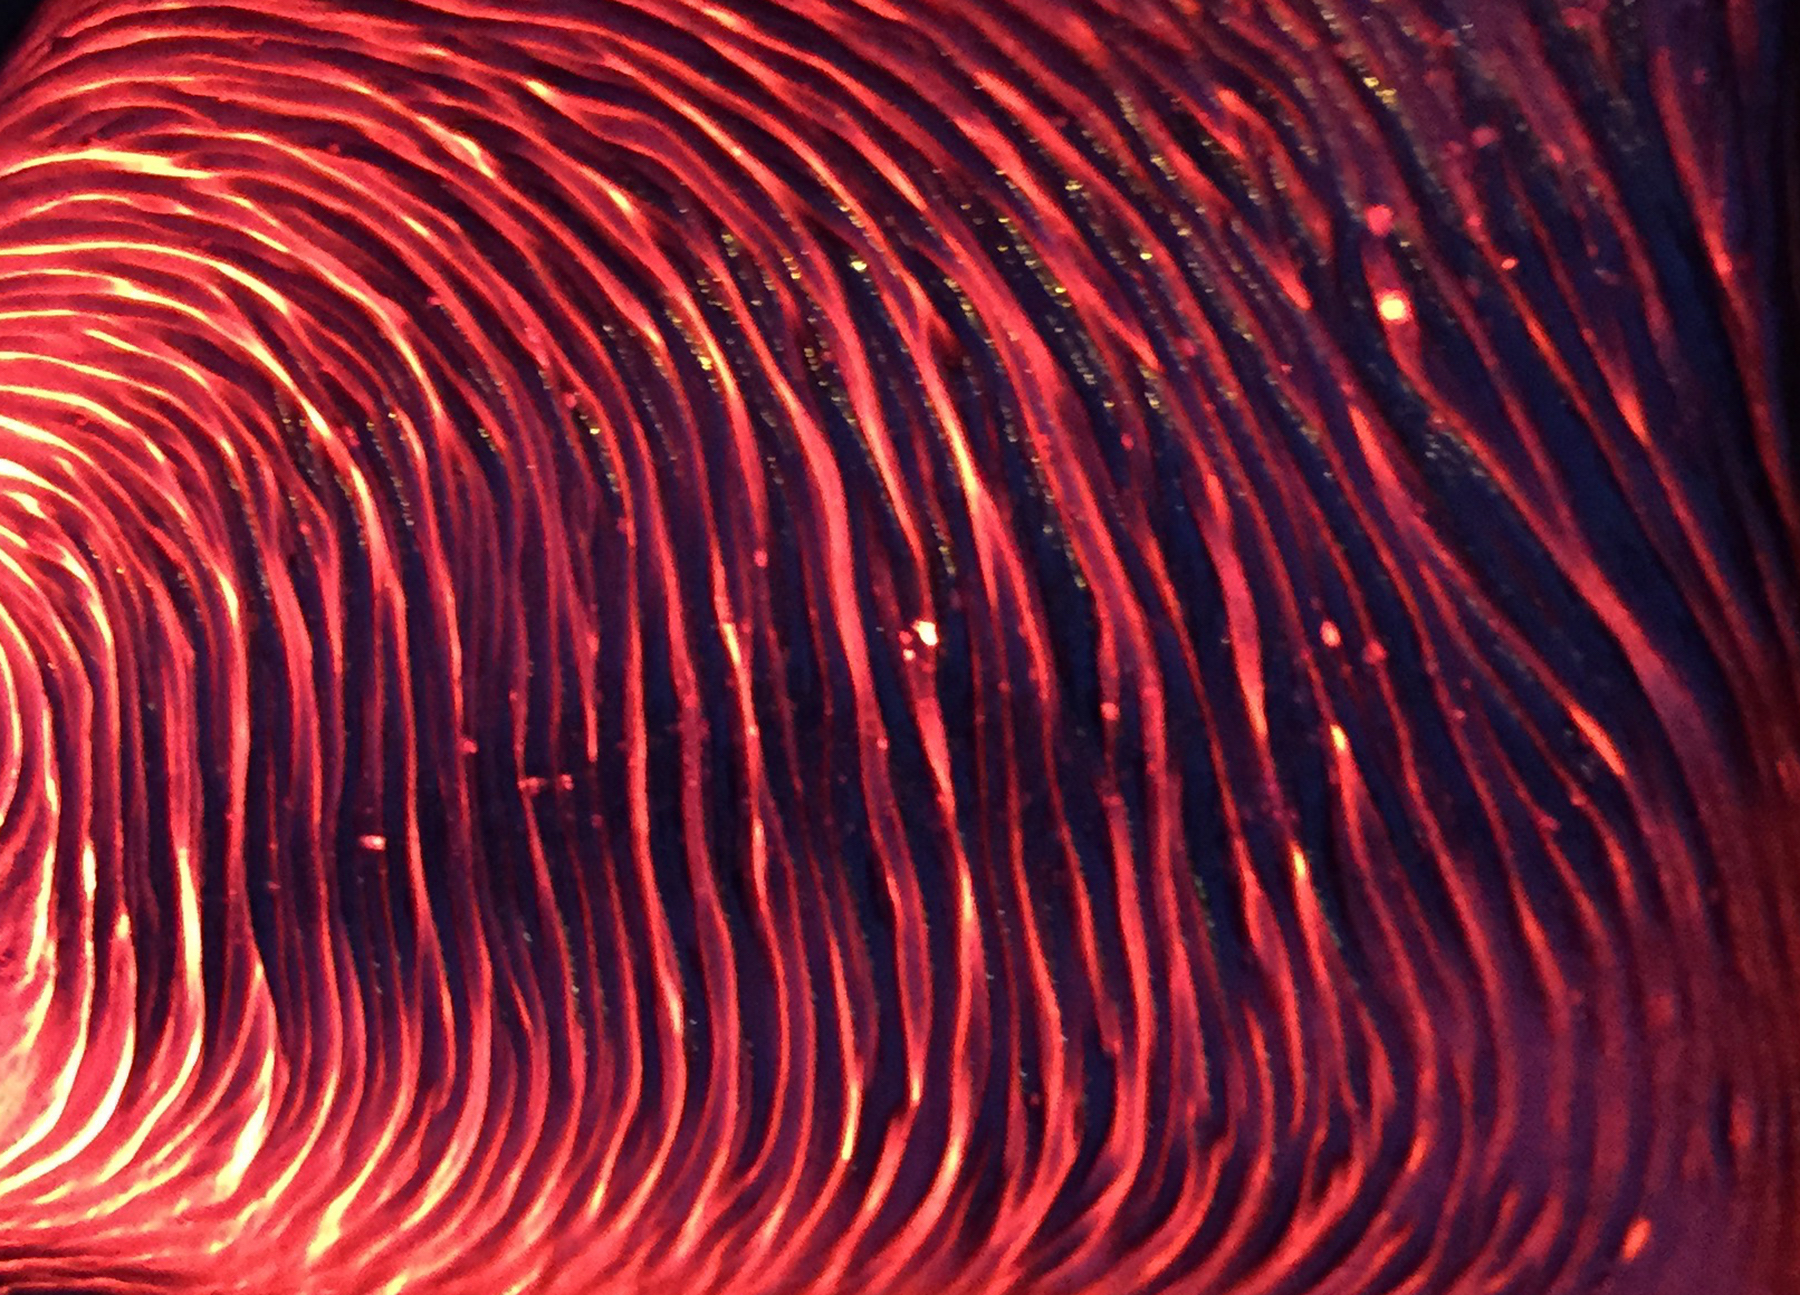 a close up of bright red glow peaks between ripples and folds of hot lava.